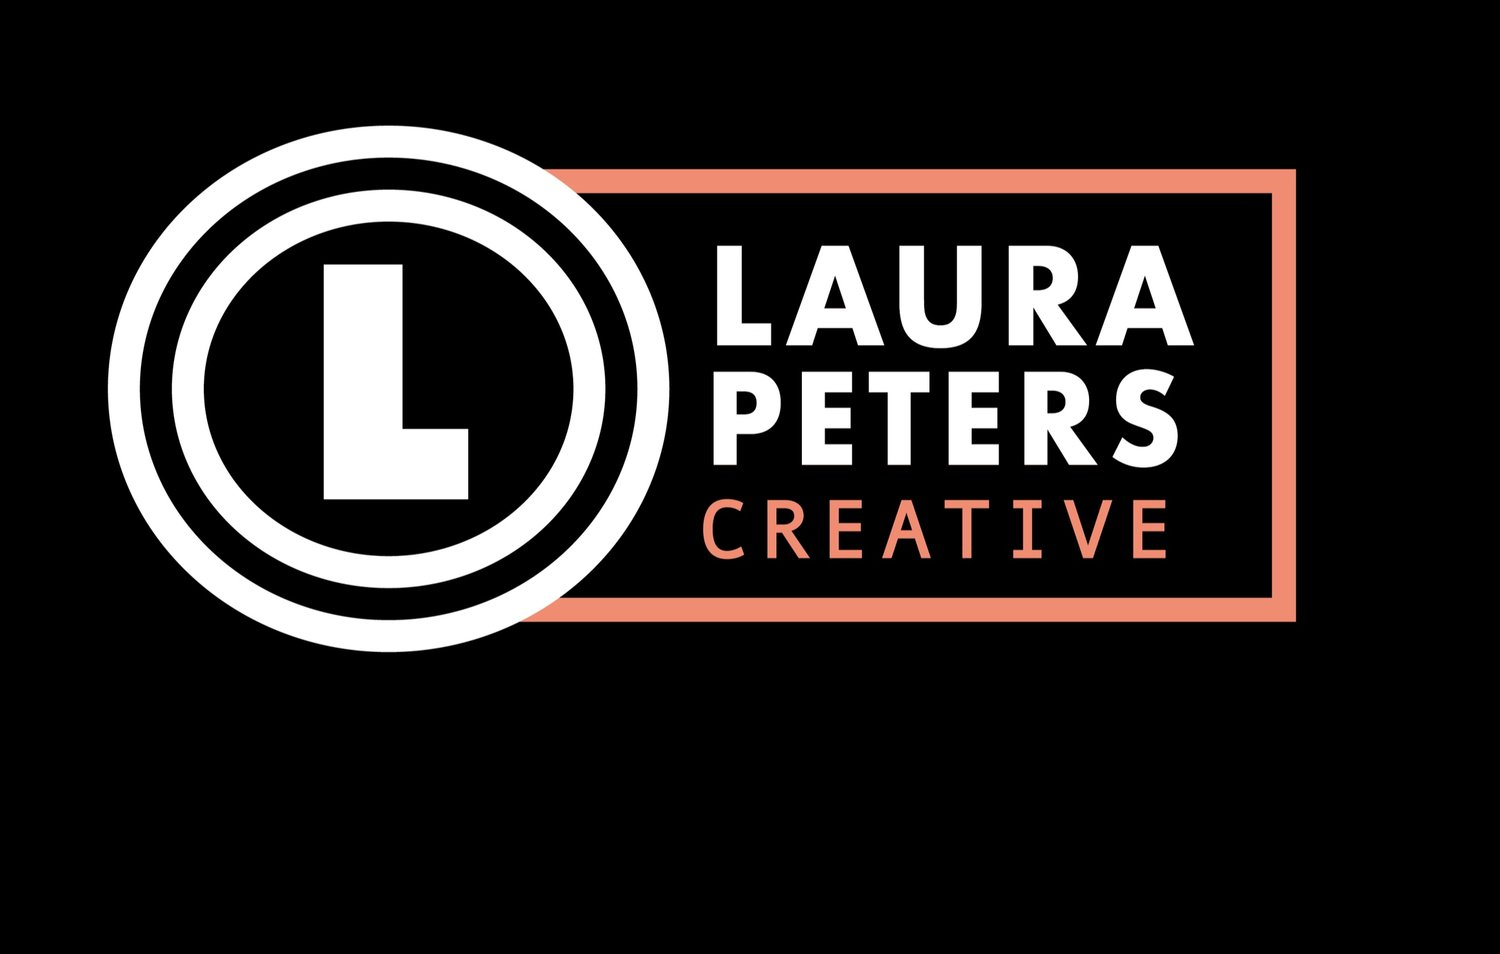 LAURAPETERSCREATIVE